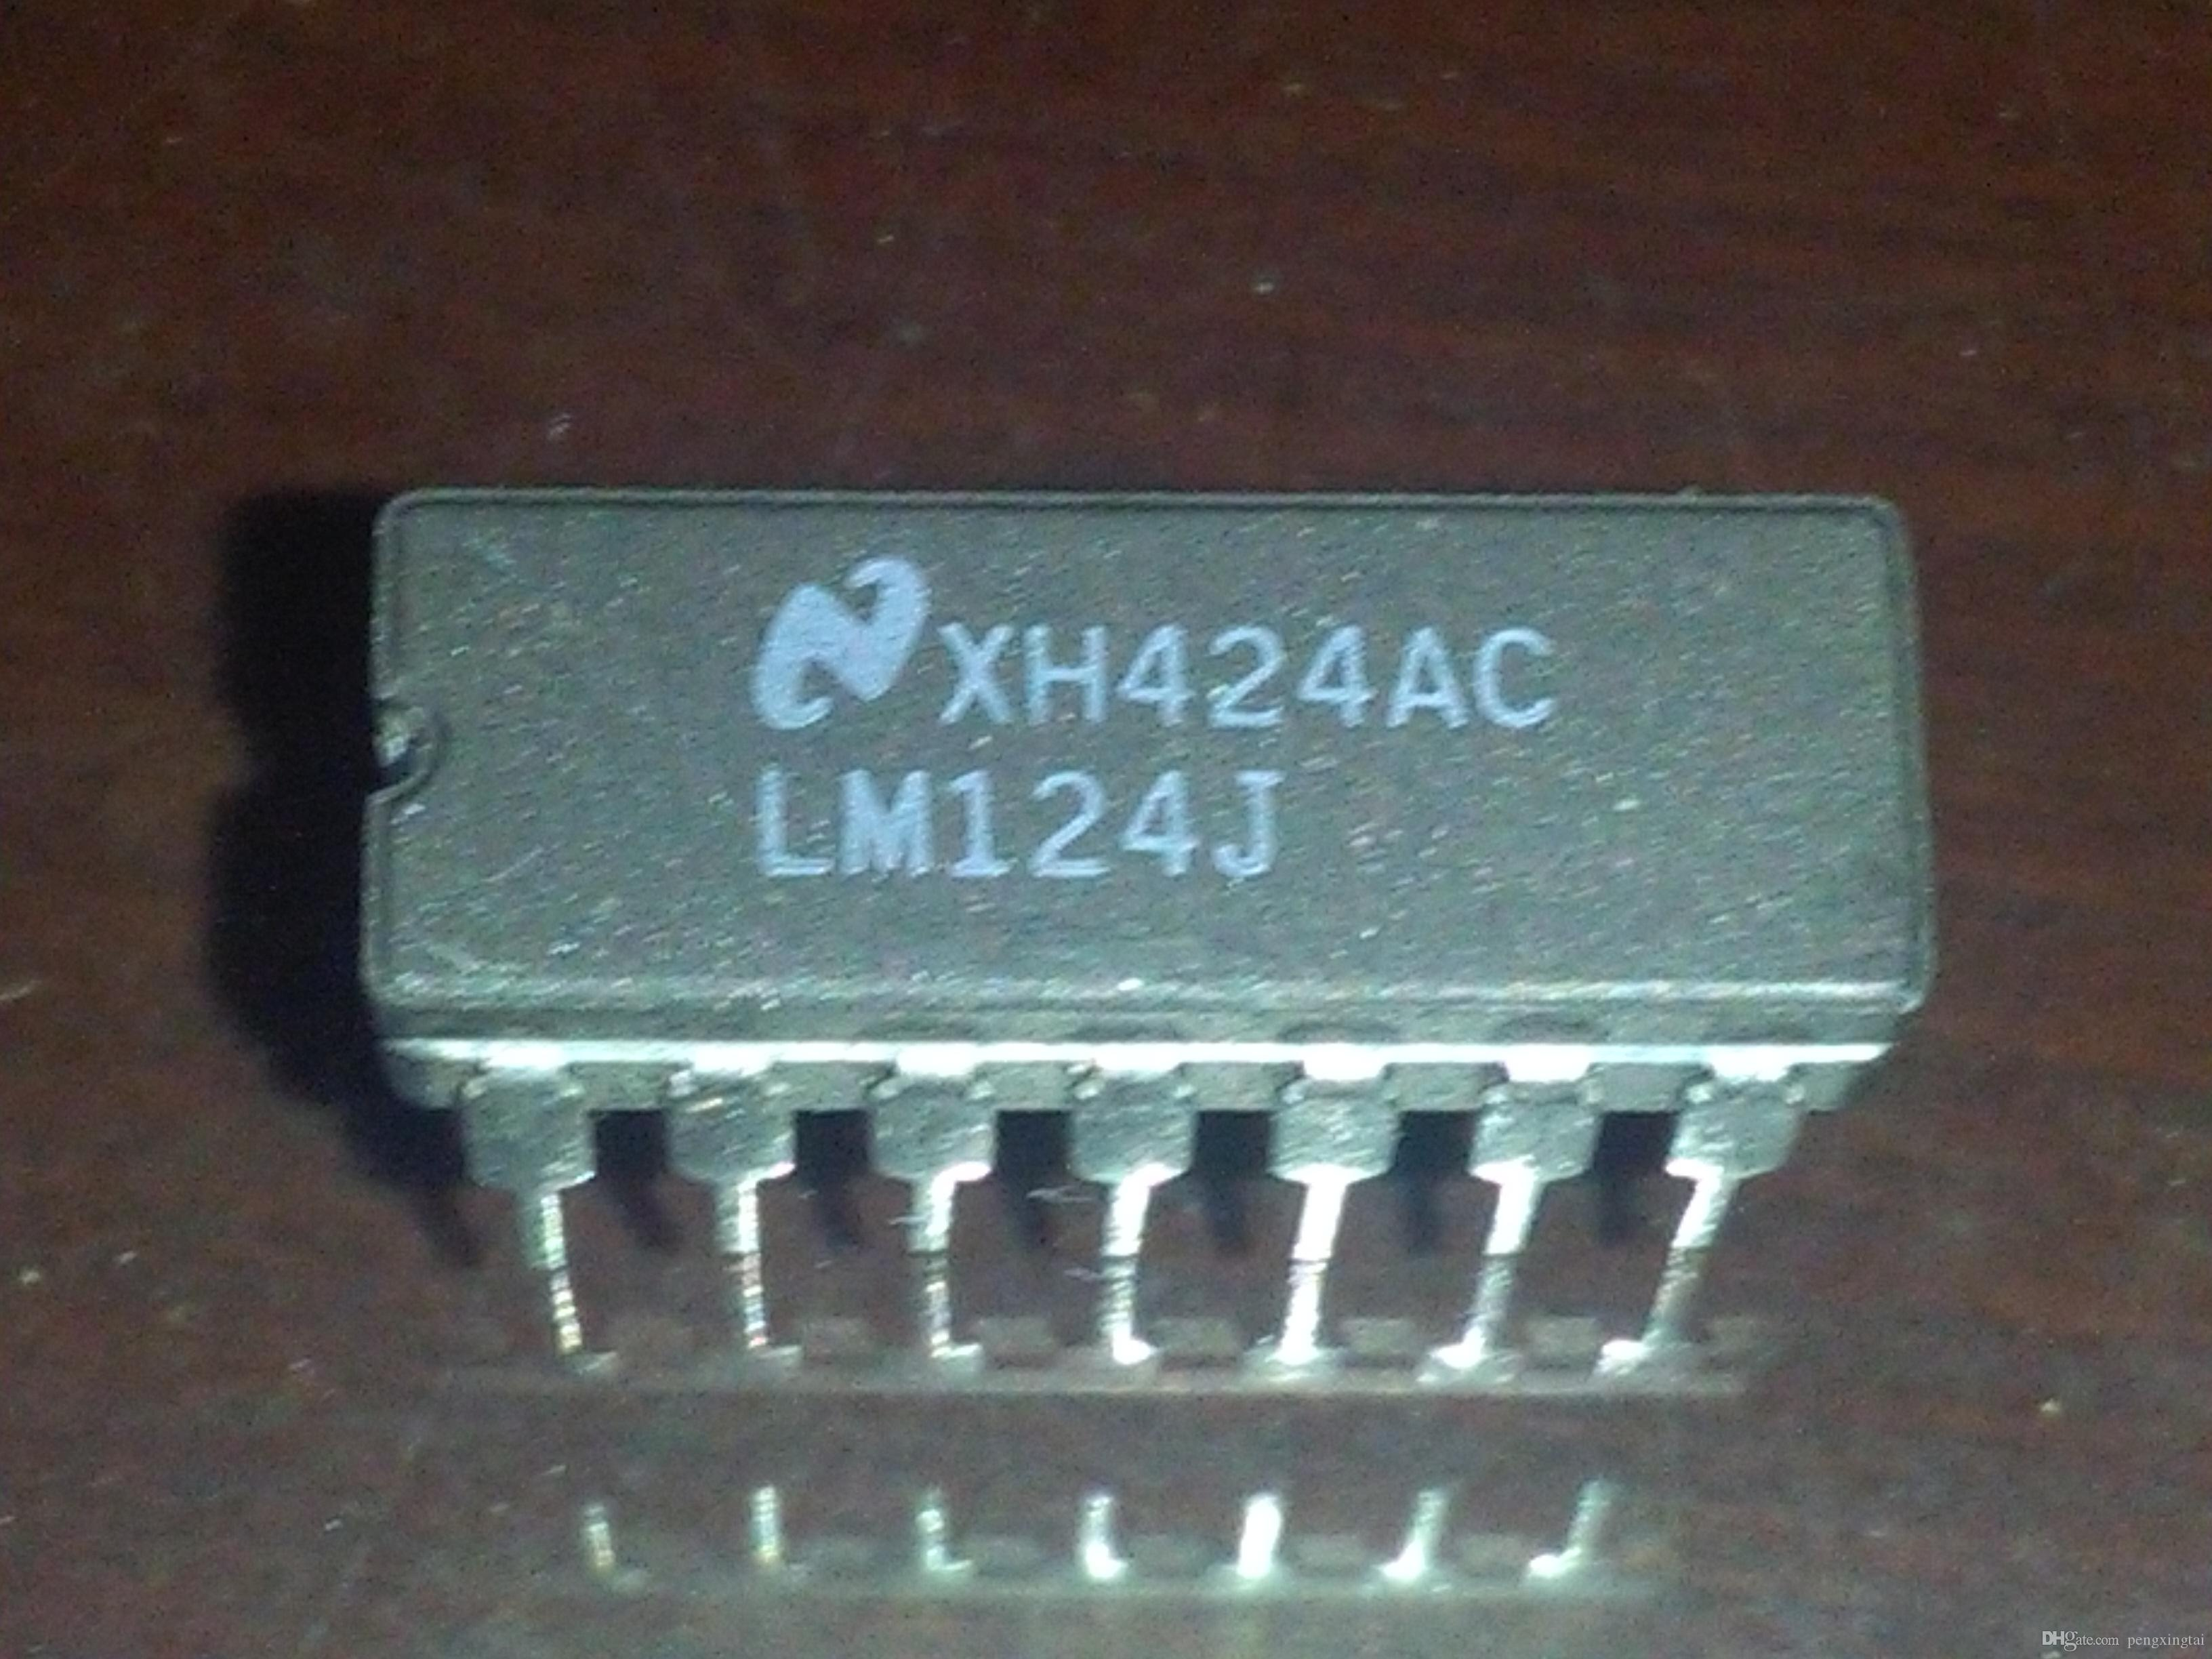 2018 Lm124j Ns Lm124 Cdip14 Quadruple Operational Amplifiers The Amplifier Electronics Ic Dual In Line 14 Pin Dip Ceramic Package Electronic Components From Pengxingtai